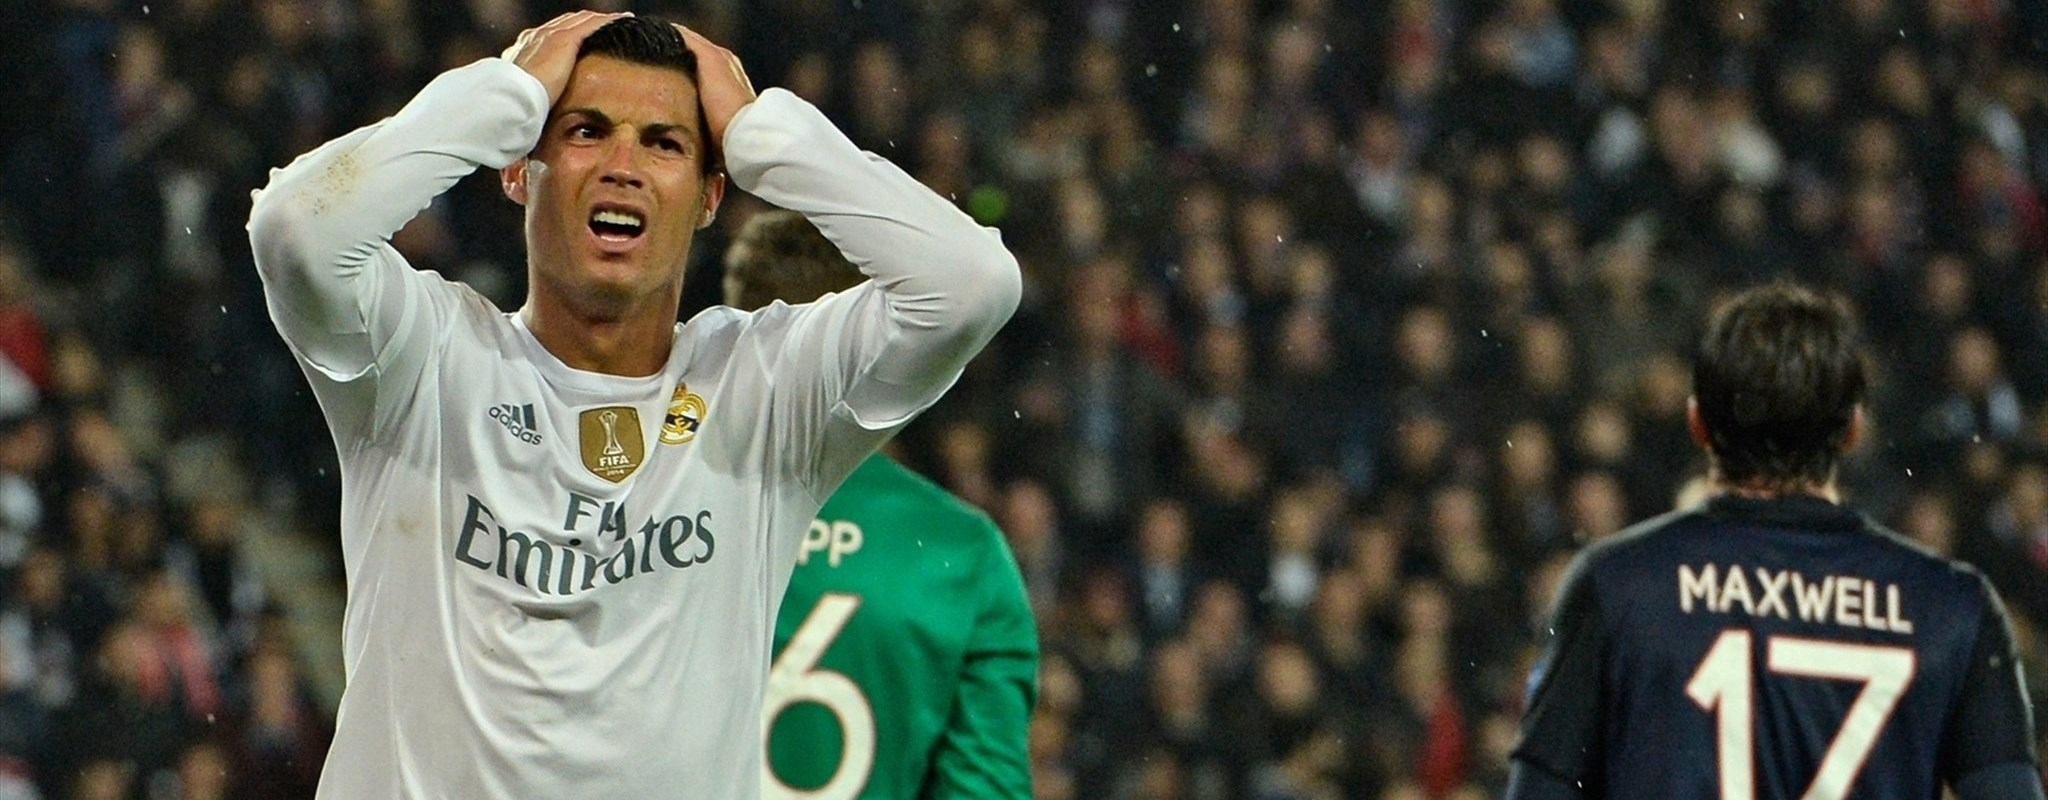 Paris, Real Madrid draw a blank in France